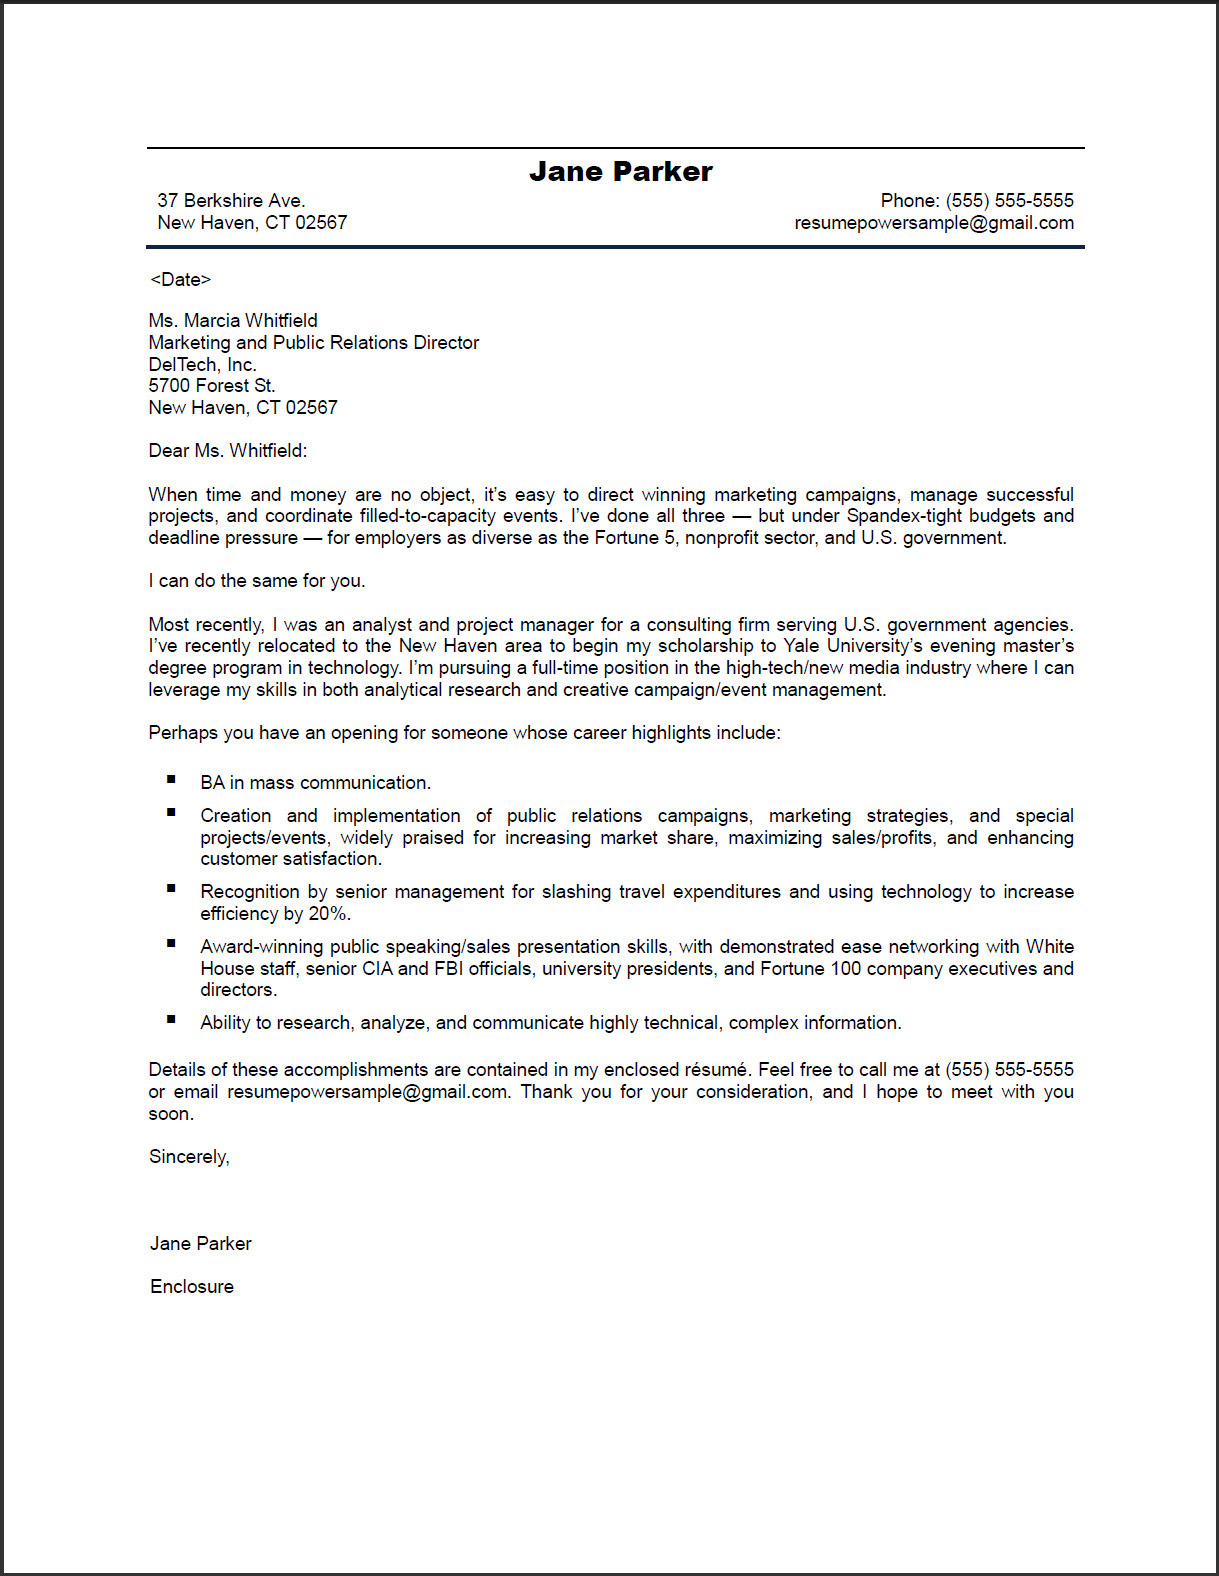 Sample Resume Cover Letter Doc Tipss Und Vorlagen